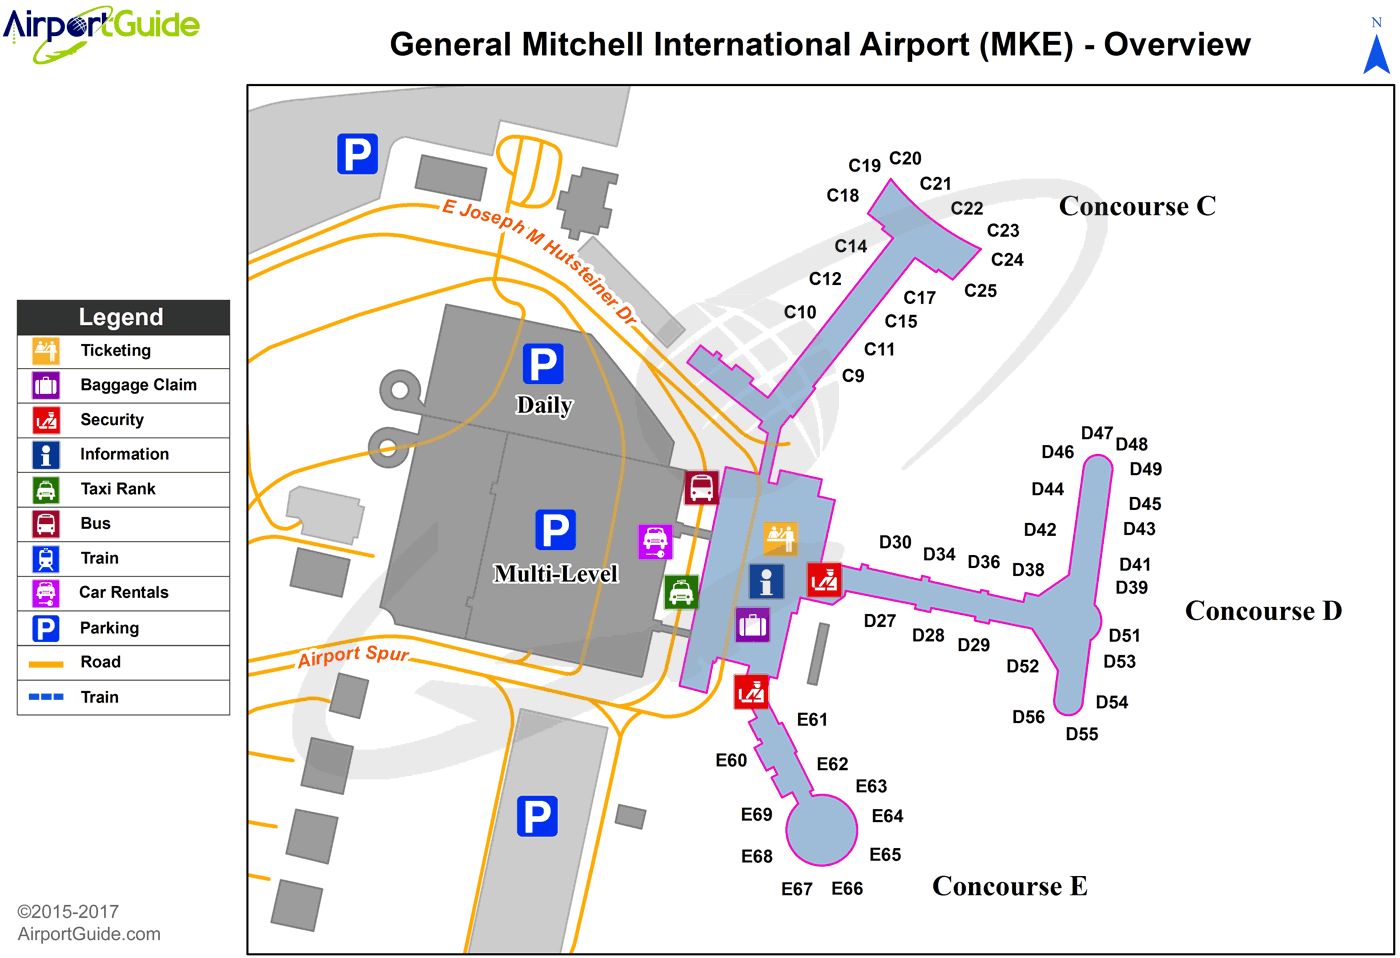 Milwaukee - General Mitchell International (MKE) Airport Terminal Map - Overview